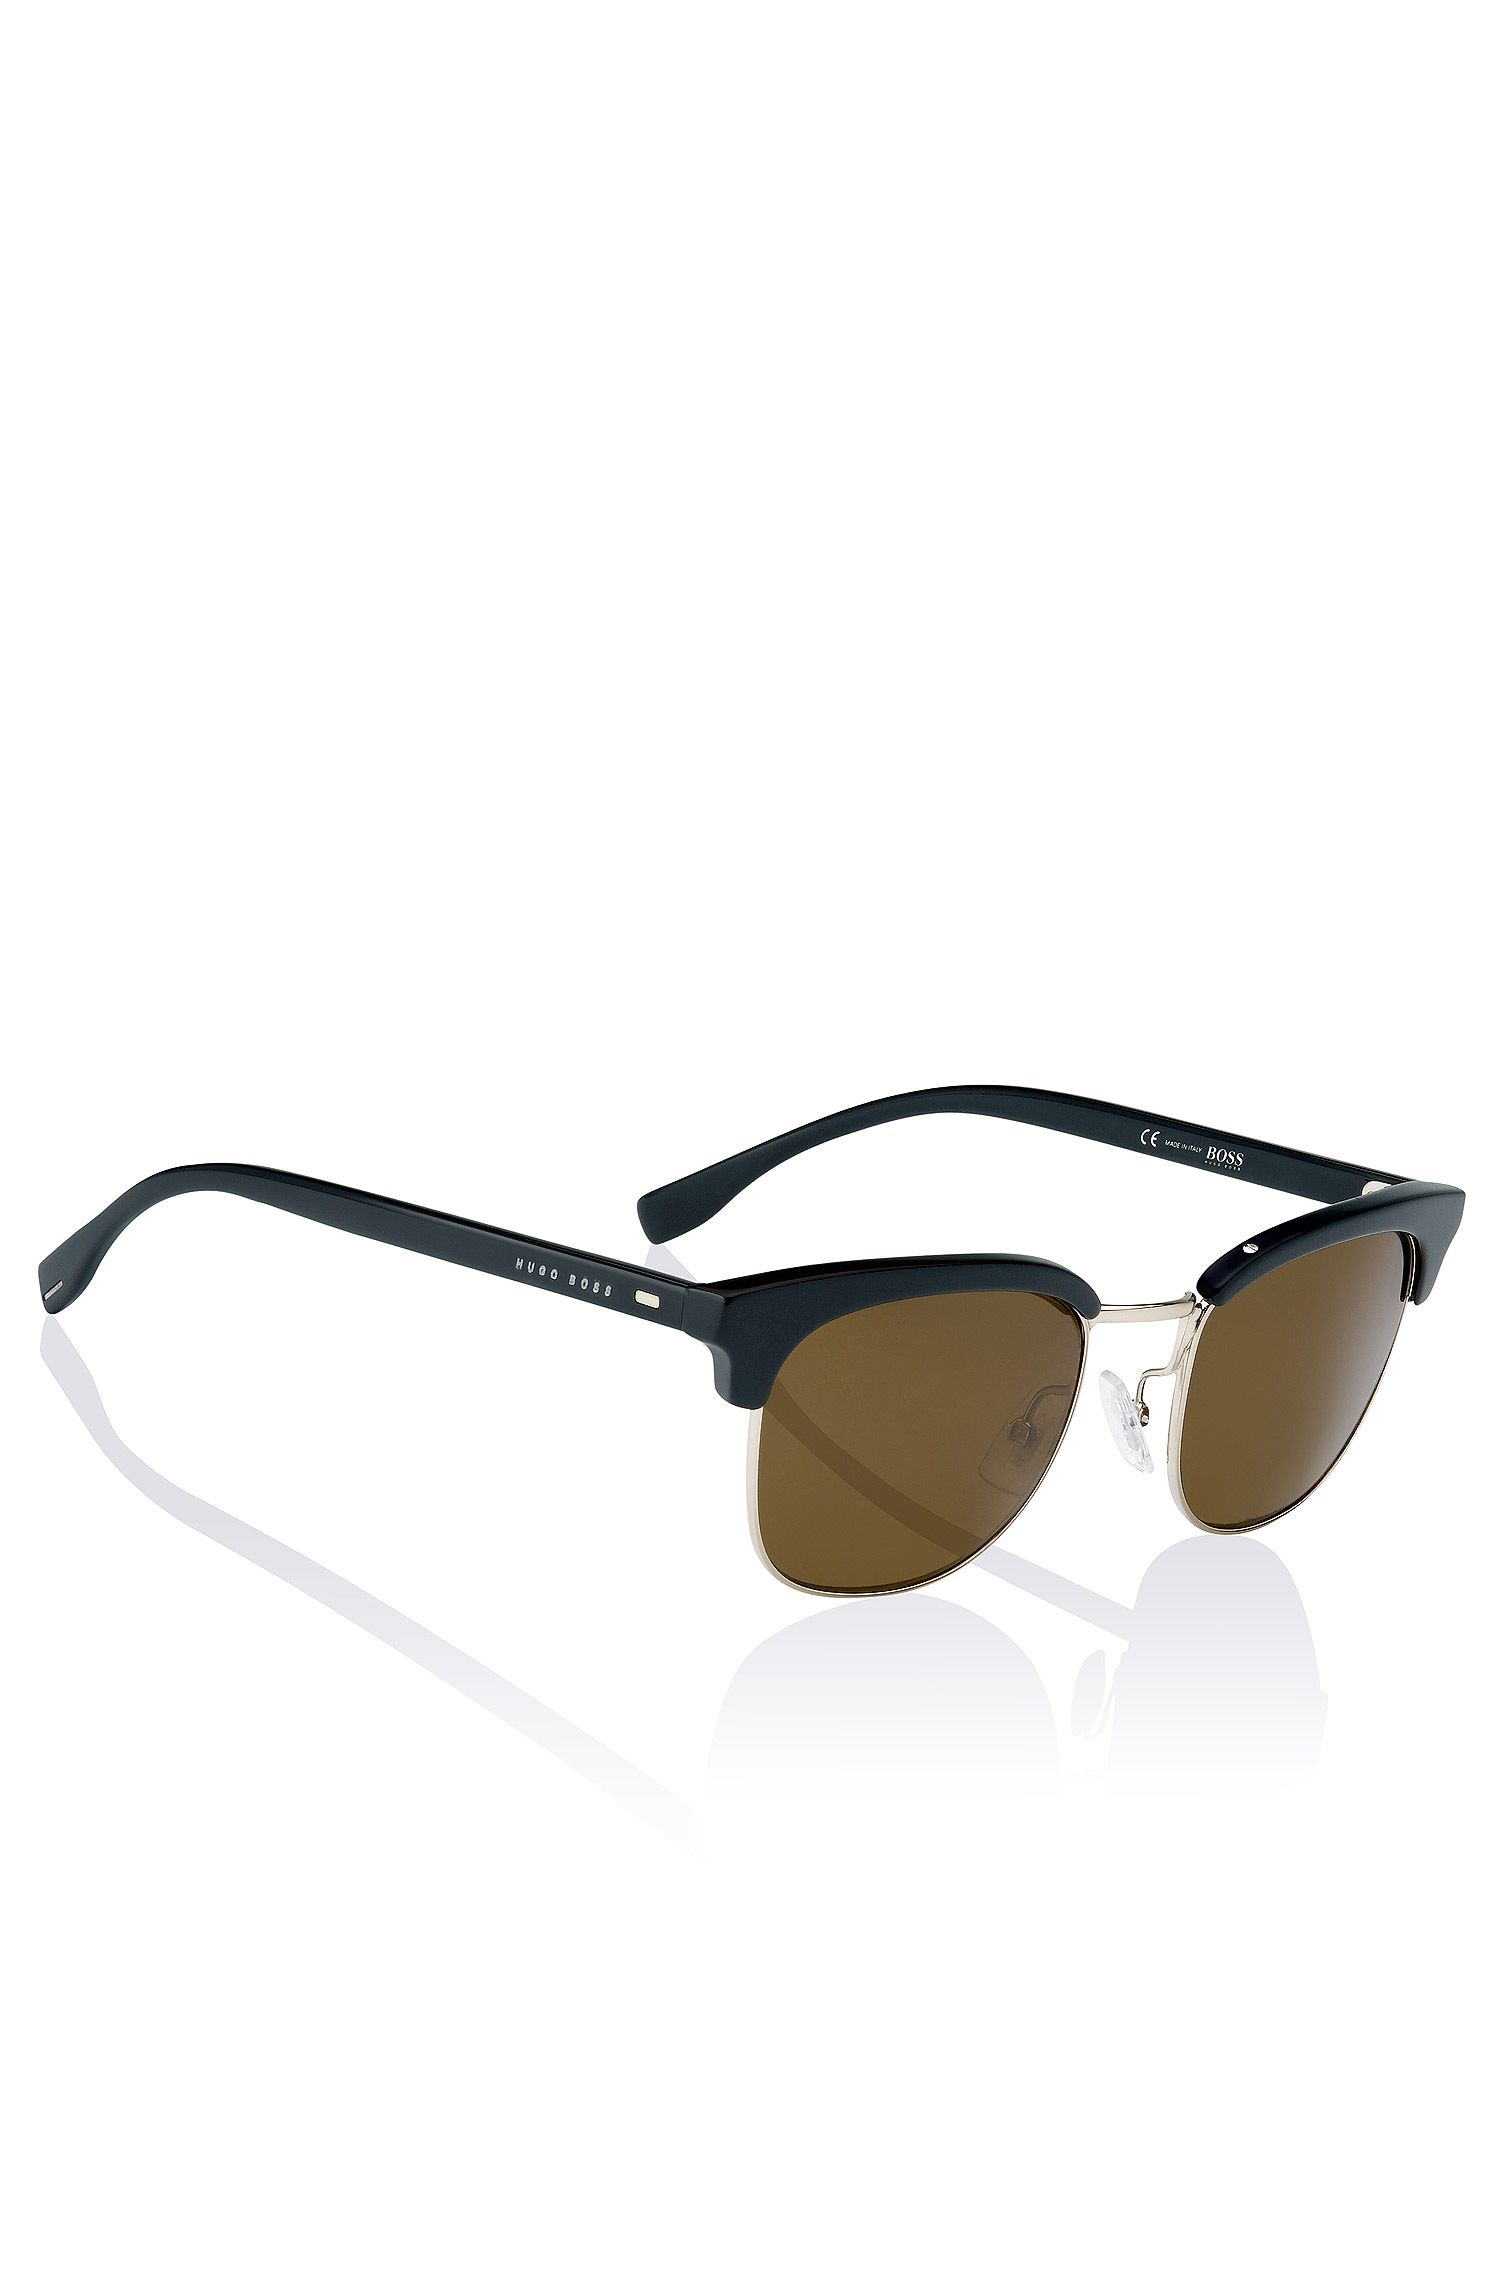 Clubmaster-Sonnenbrille ´BOSS 0667`